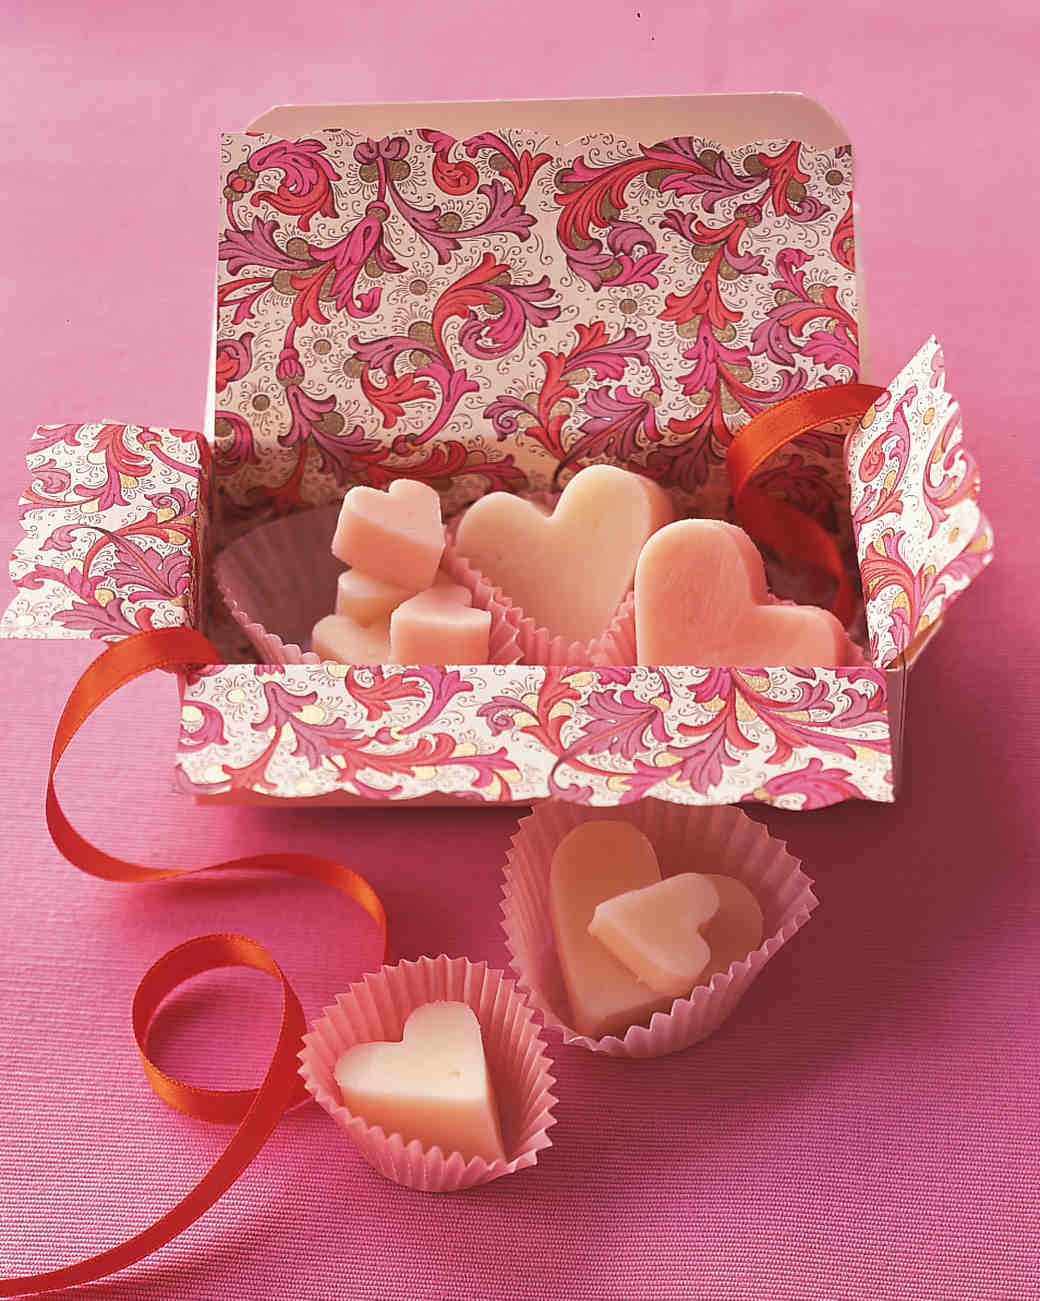 heart-shaped-dessert-fudge-hearts-ms-feb00-0115.jpg